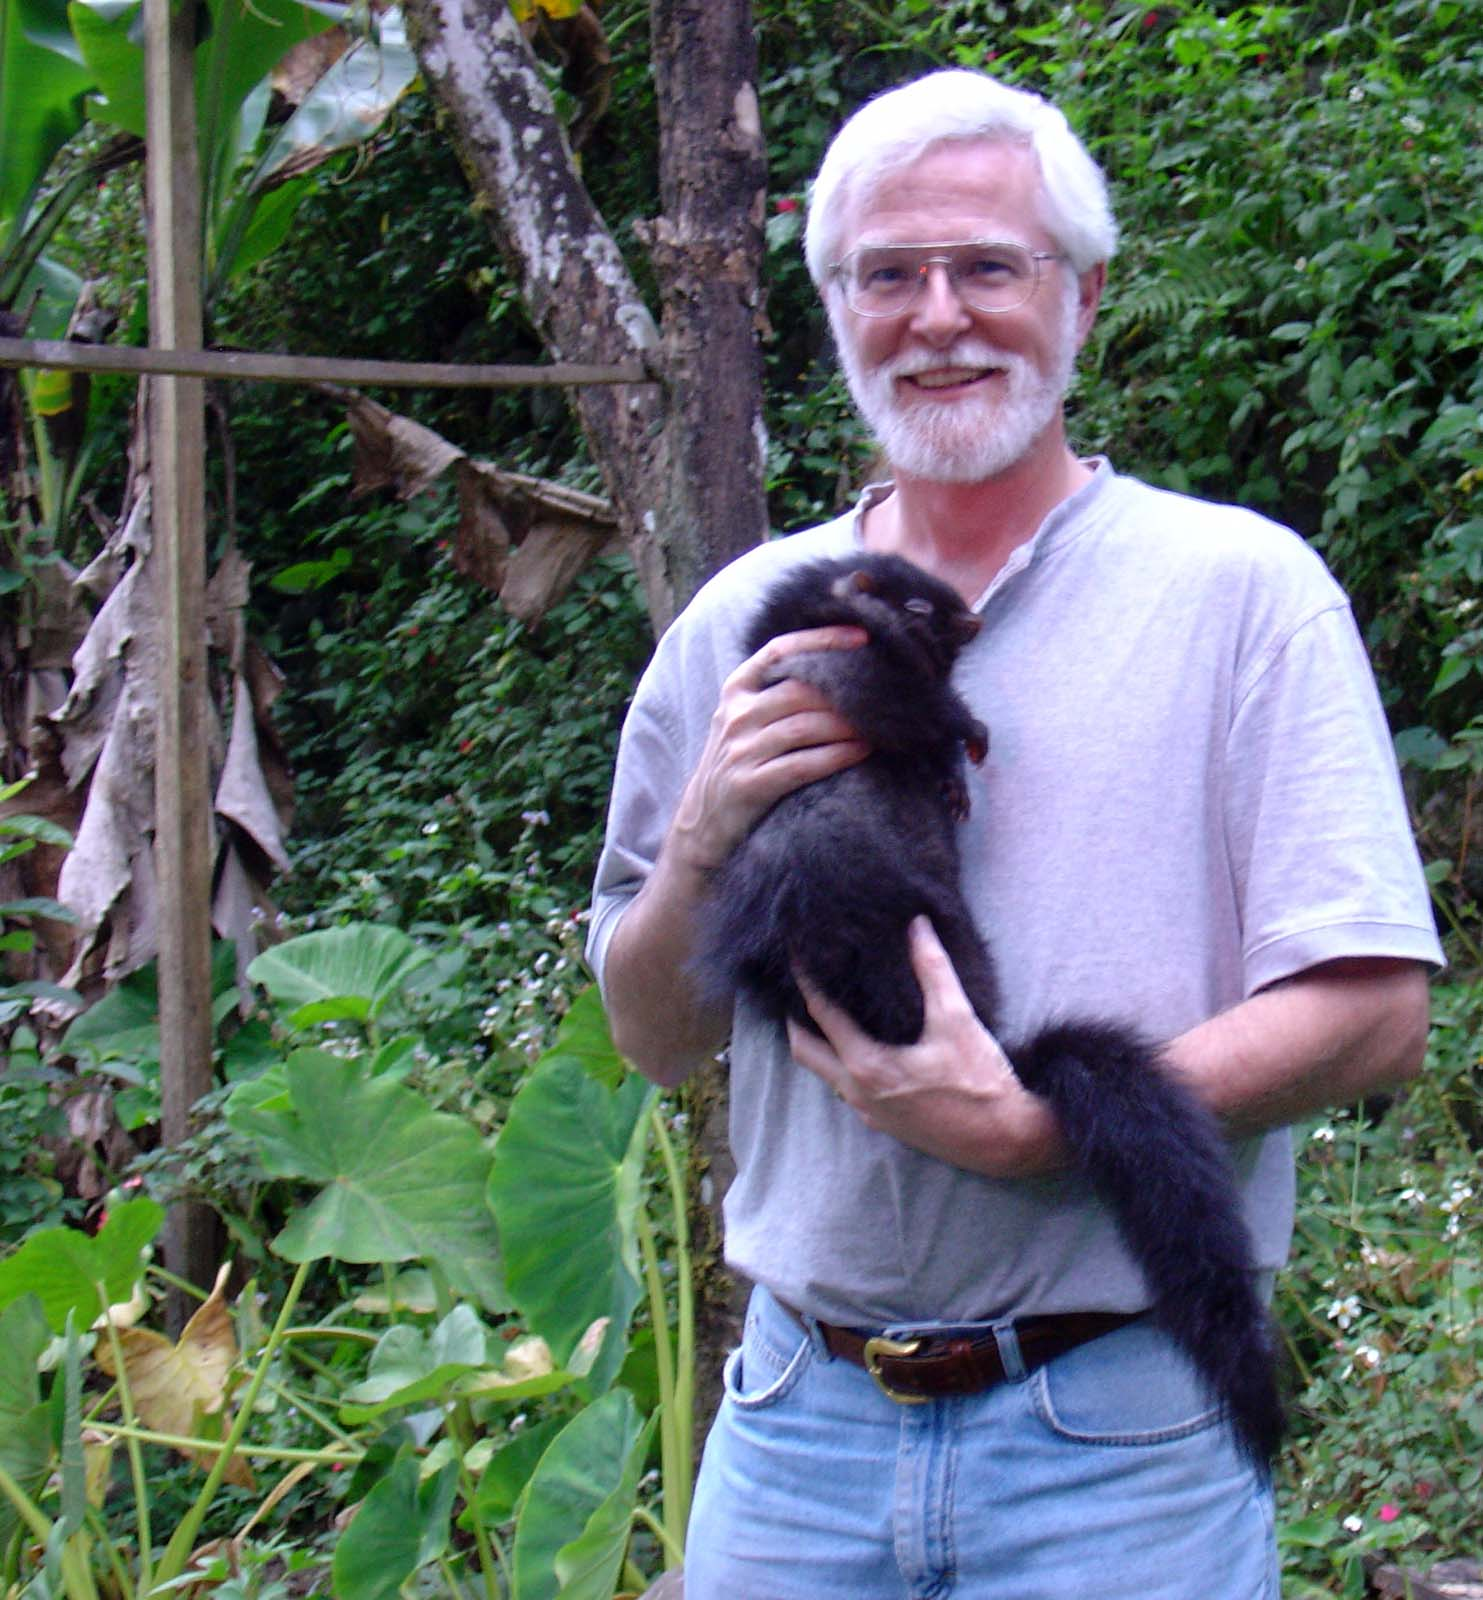 Lawrence Heaney with Crateromys, a genus of rodent native to the Philippines.